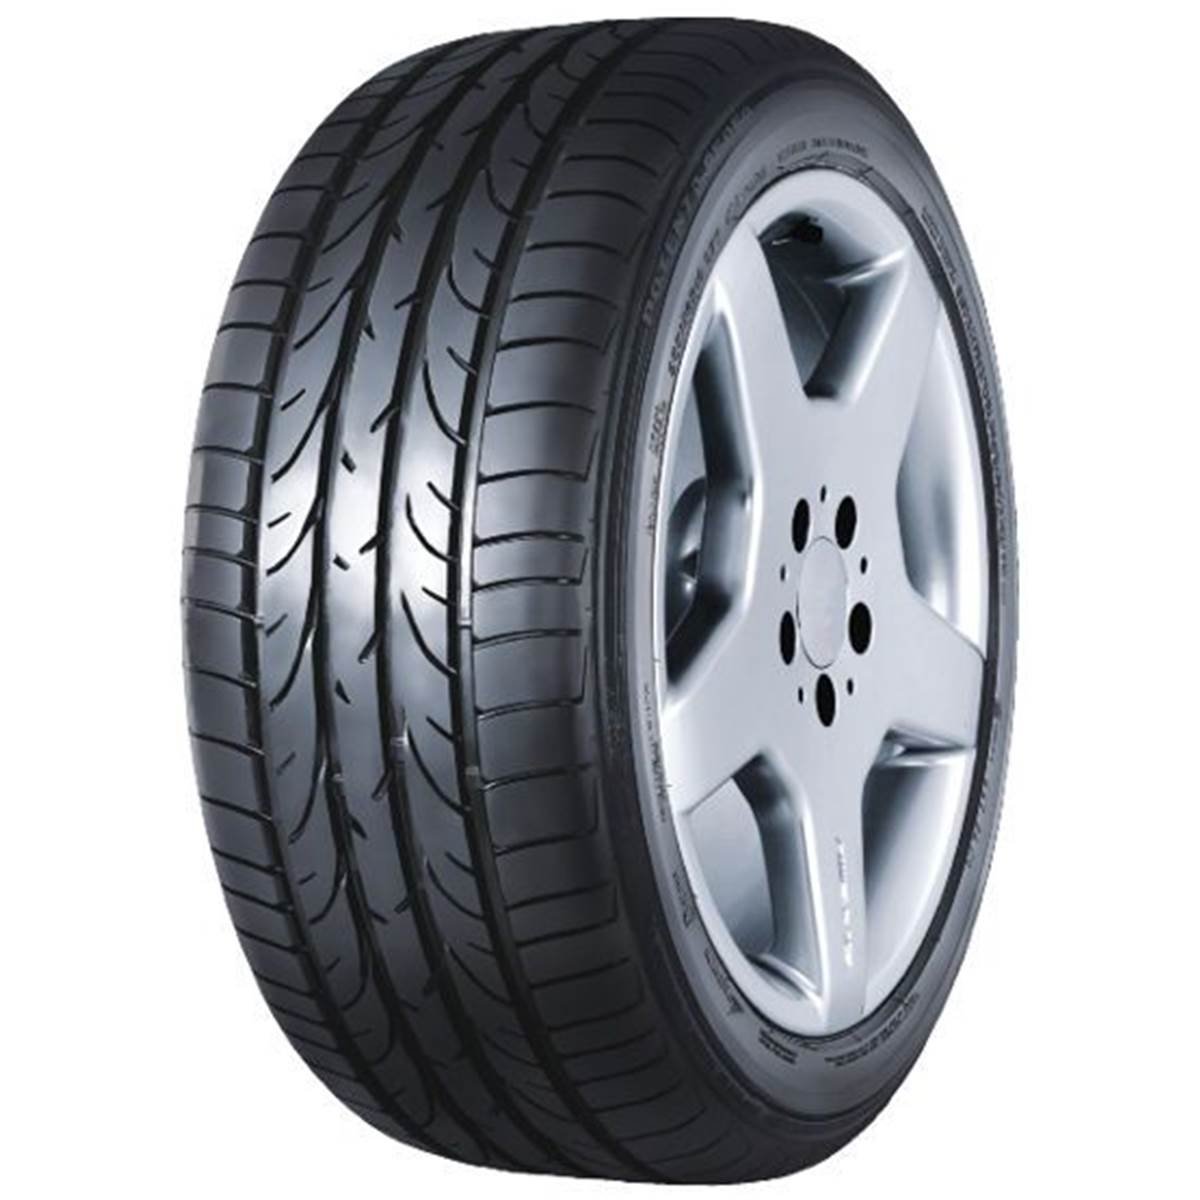 Pneu Bridgestone 205/45R17 88V Potenza Re050 XL